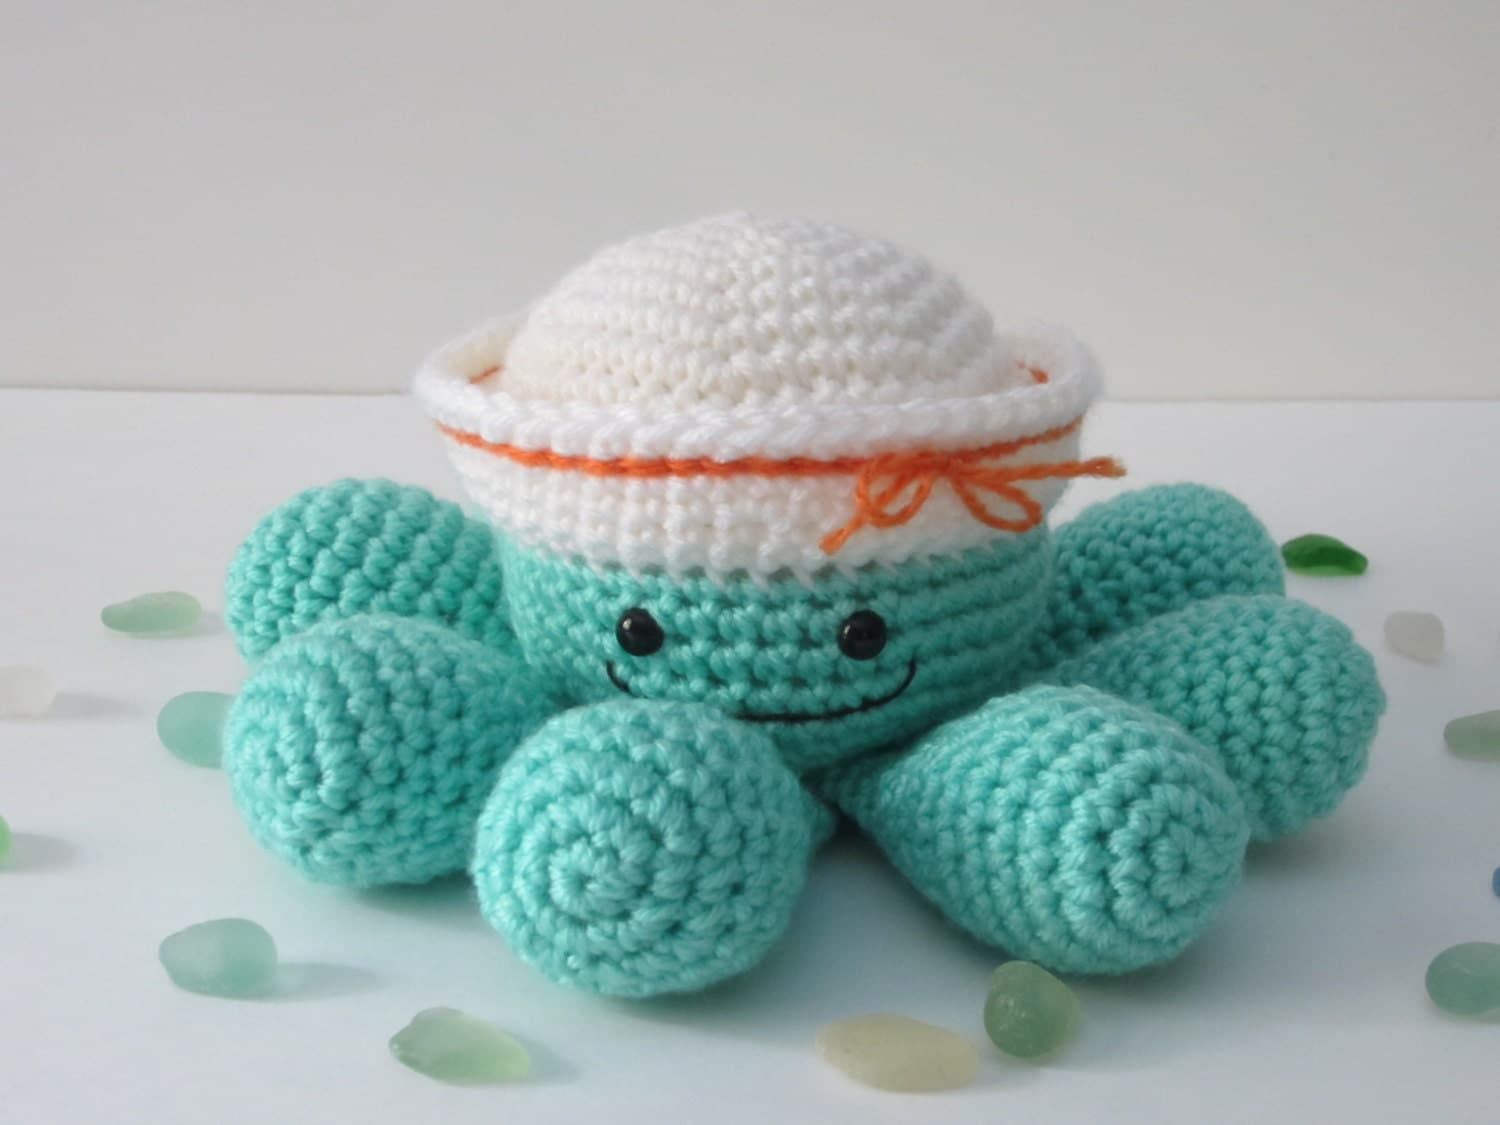 Octopus Pattern Crochet Crochet Octopus Stuffed